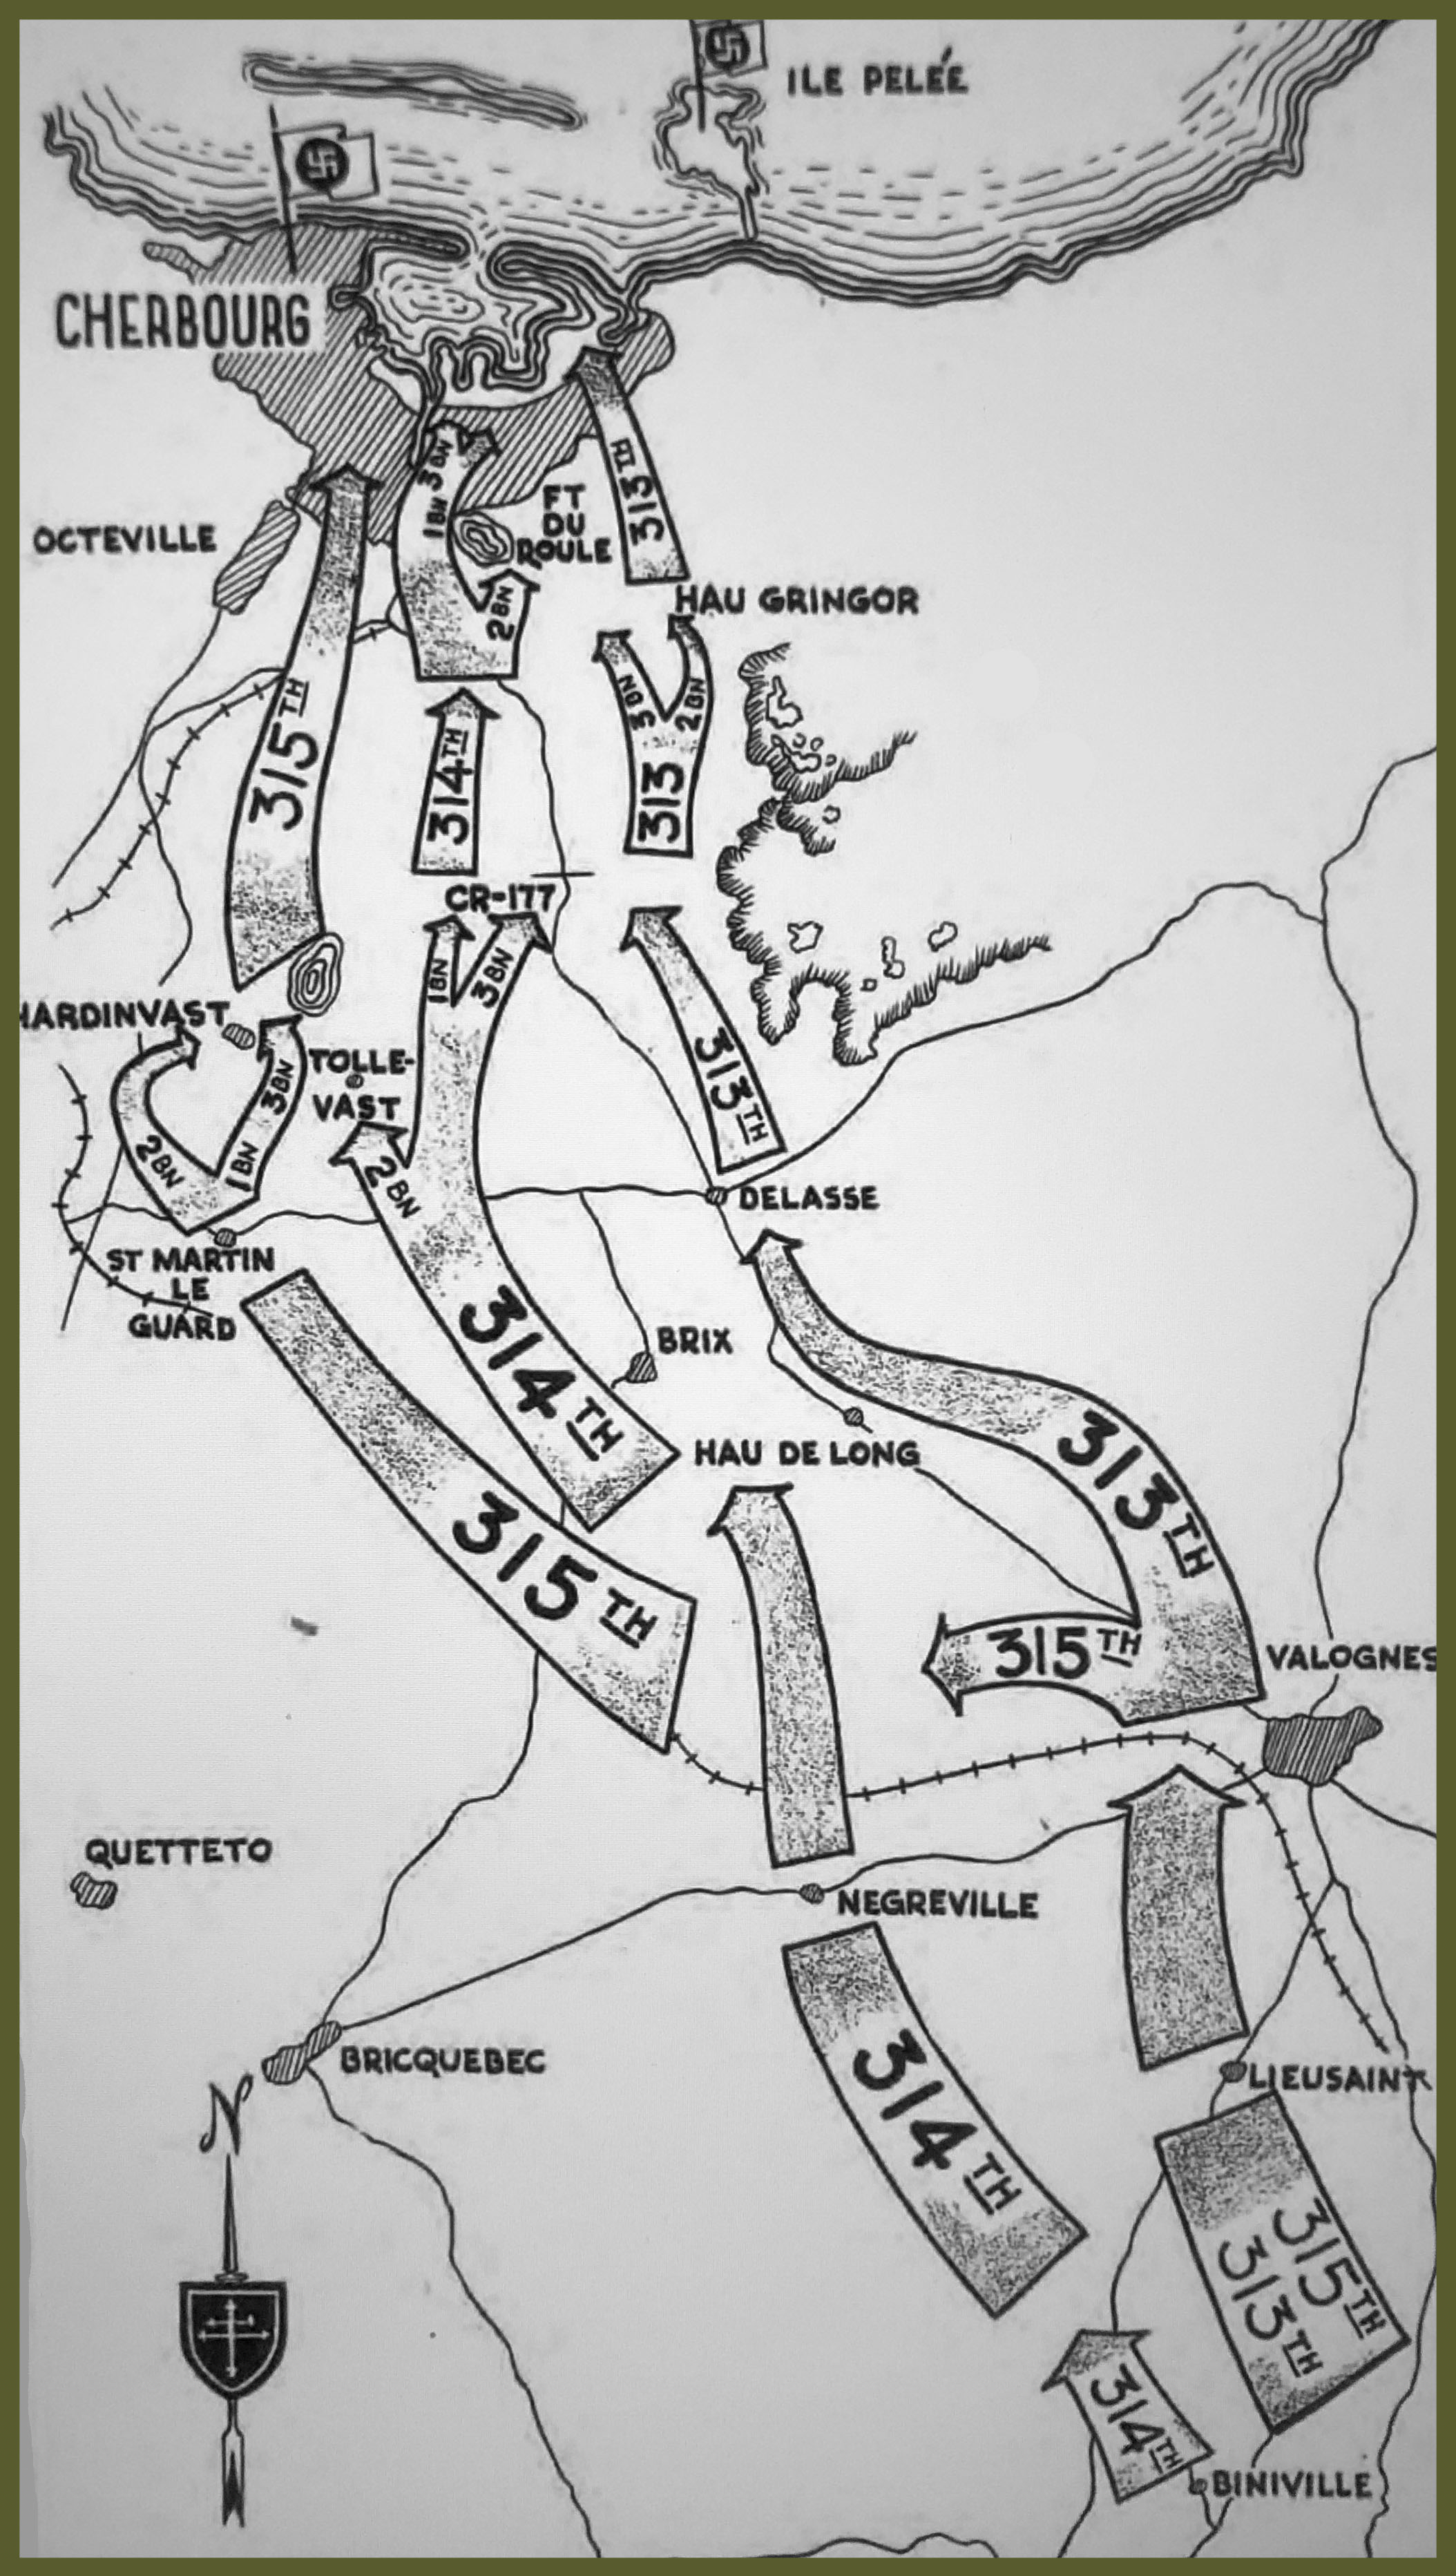 79th infantry division route to Cherbourg copy